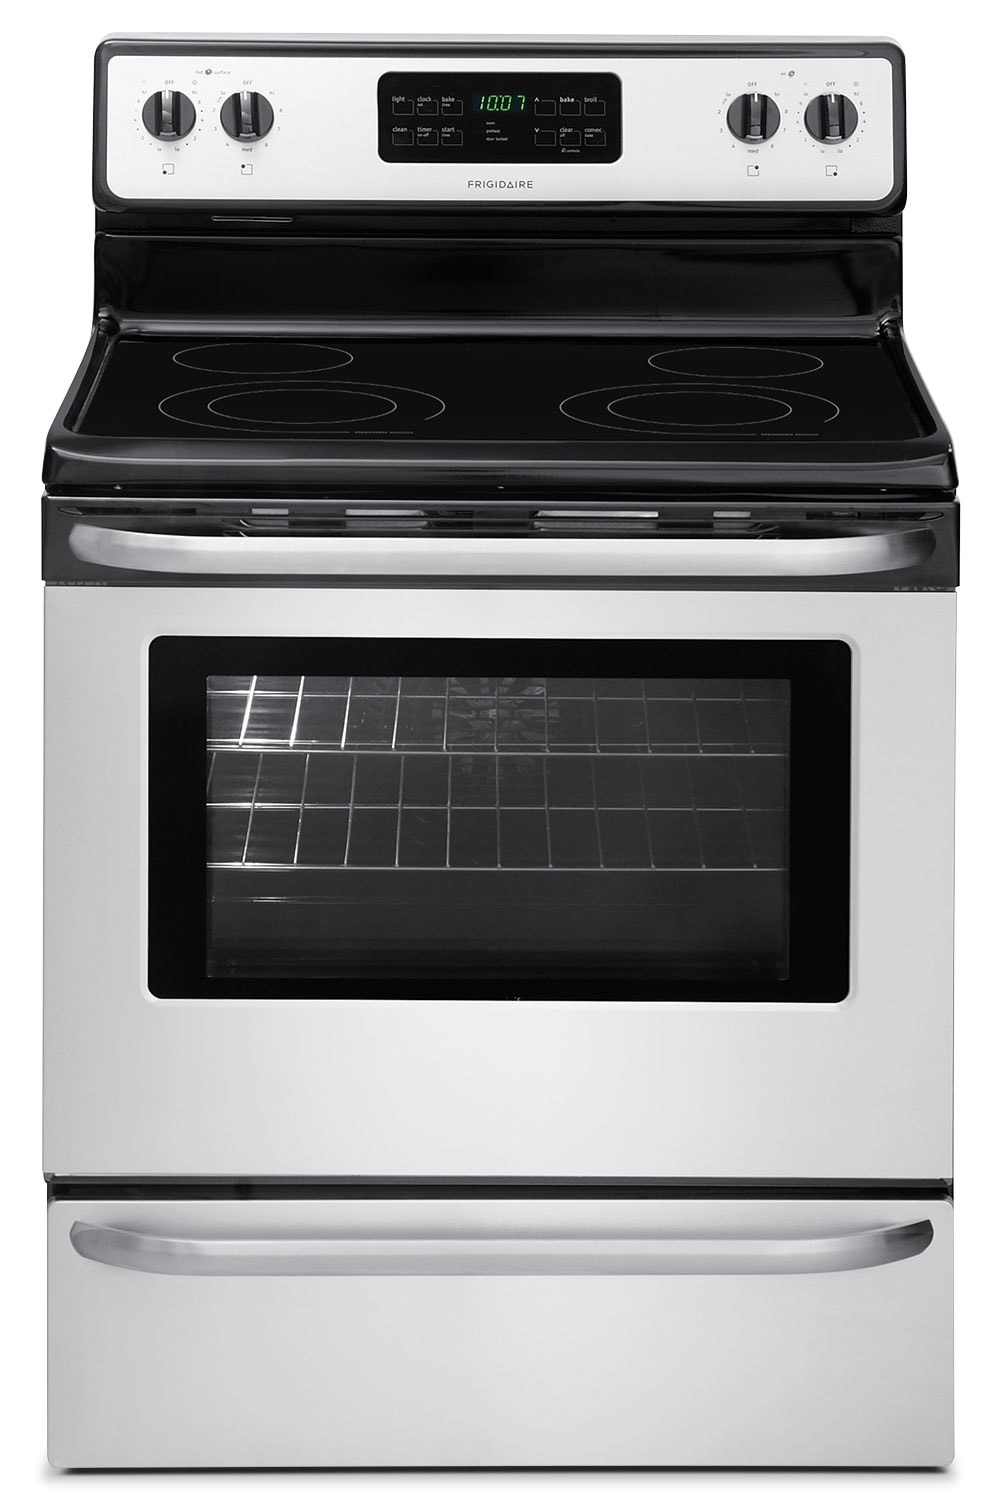 Frigidaire 5.4 Cu. Ft. Self-Clean Freestanding Range - Stainless Steel